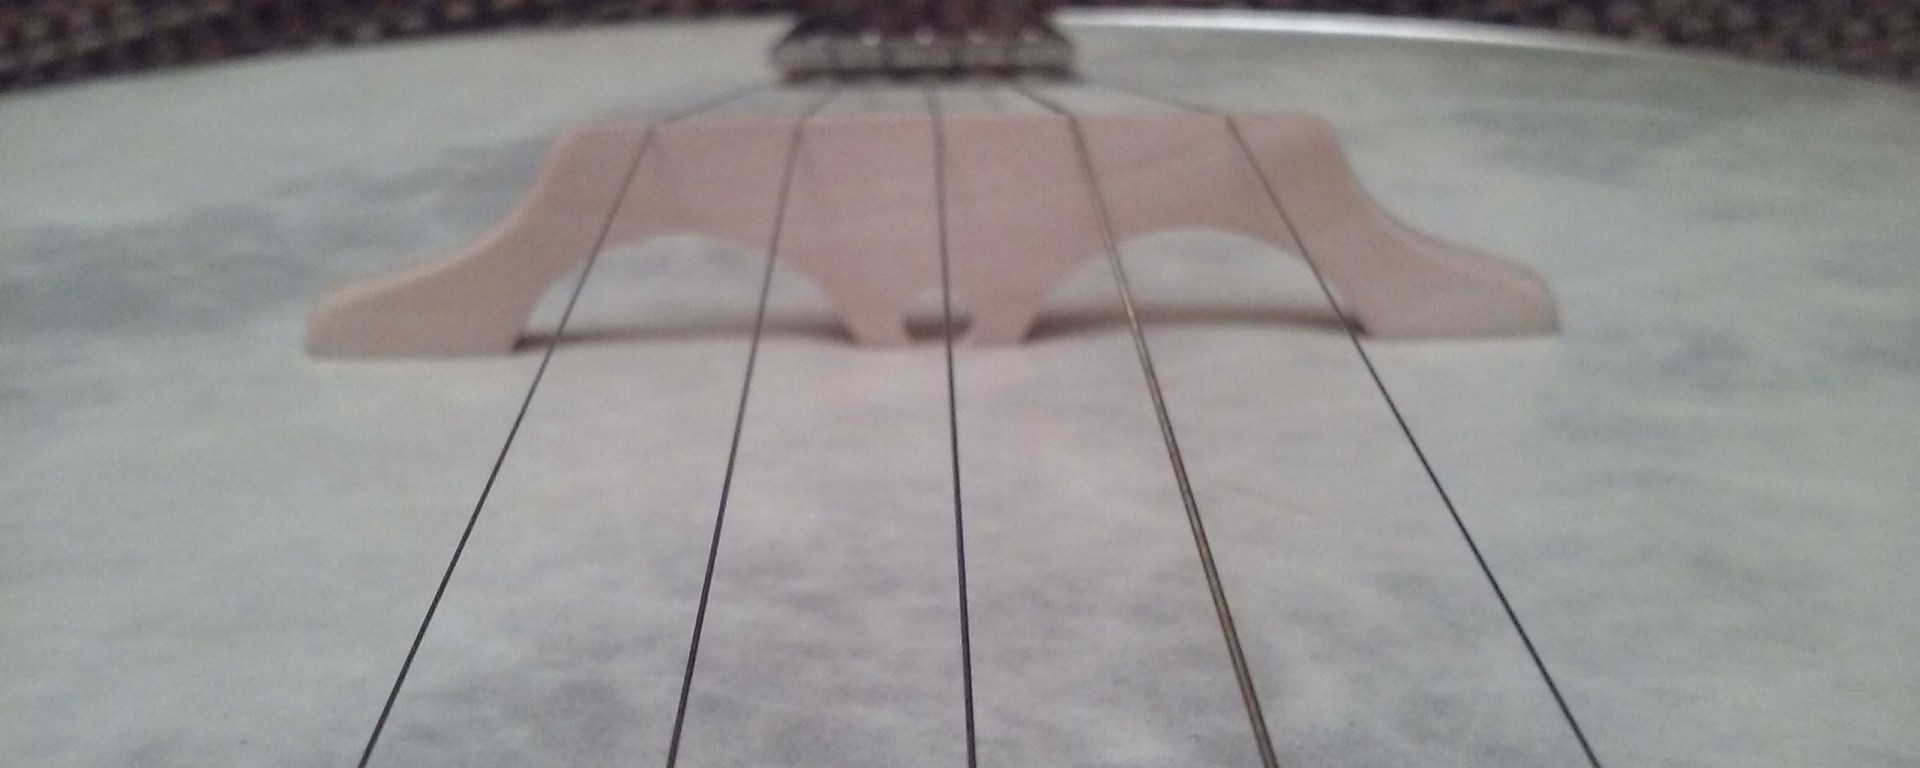 Custom banjo bridge by Mac Traynham